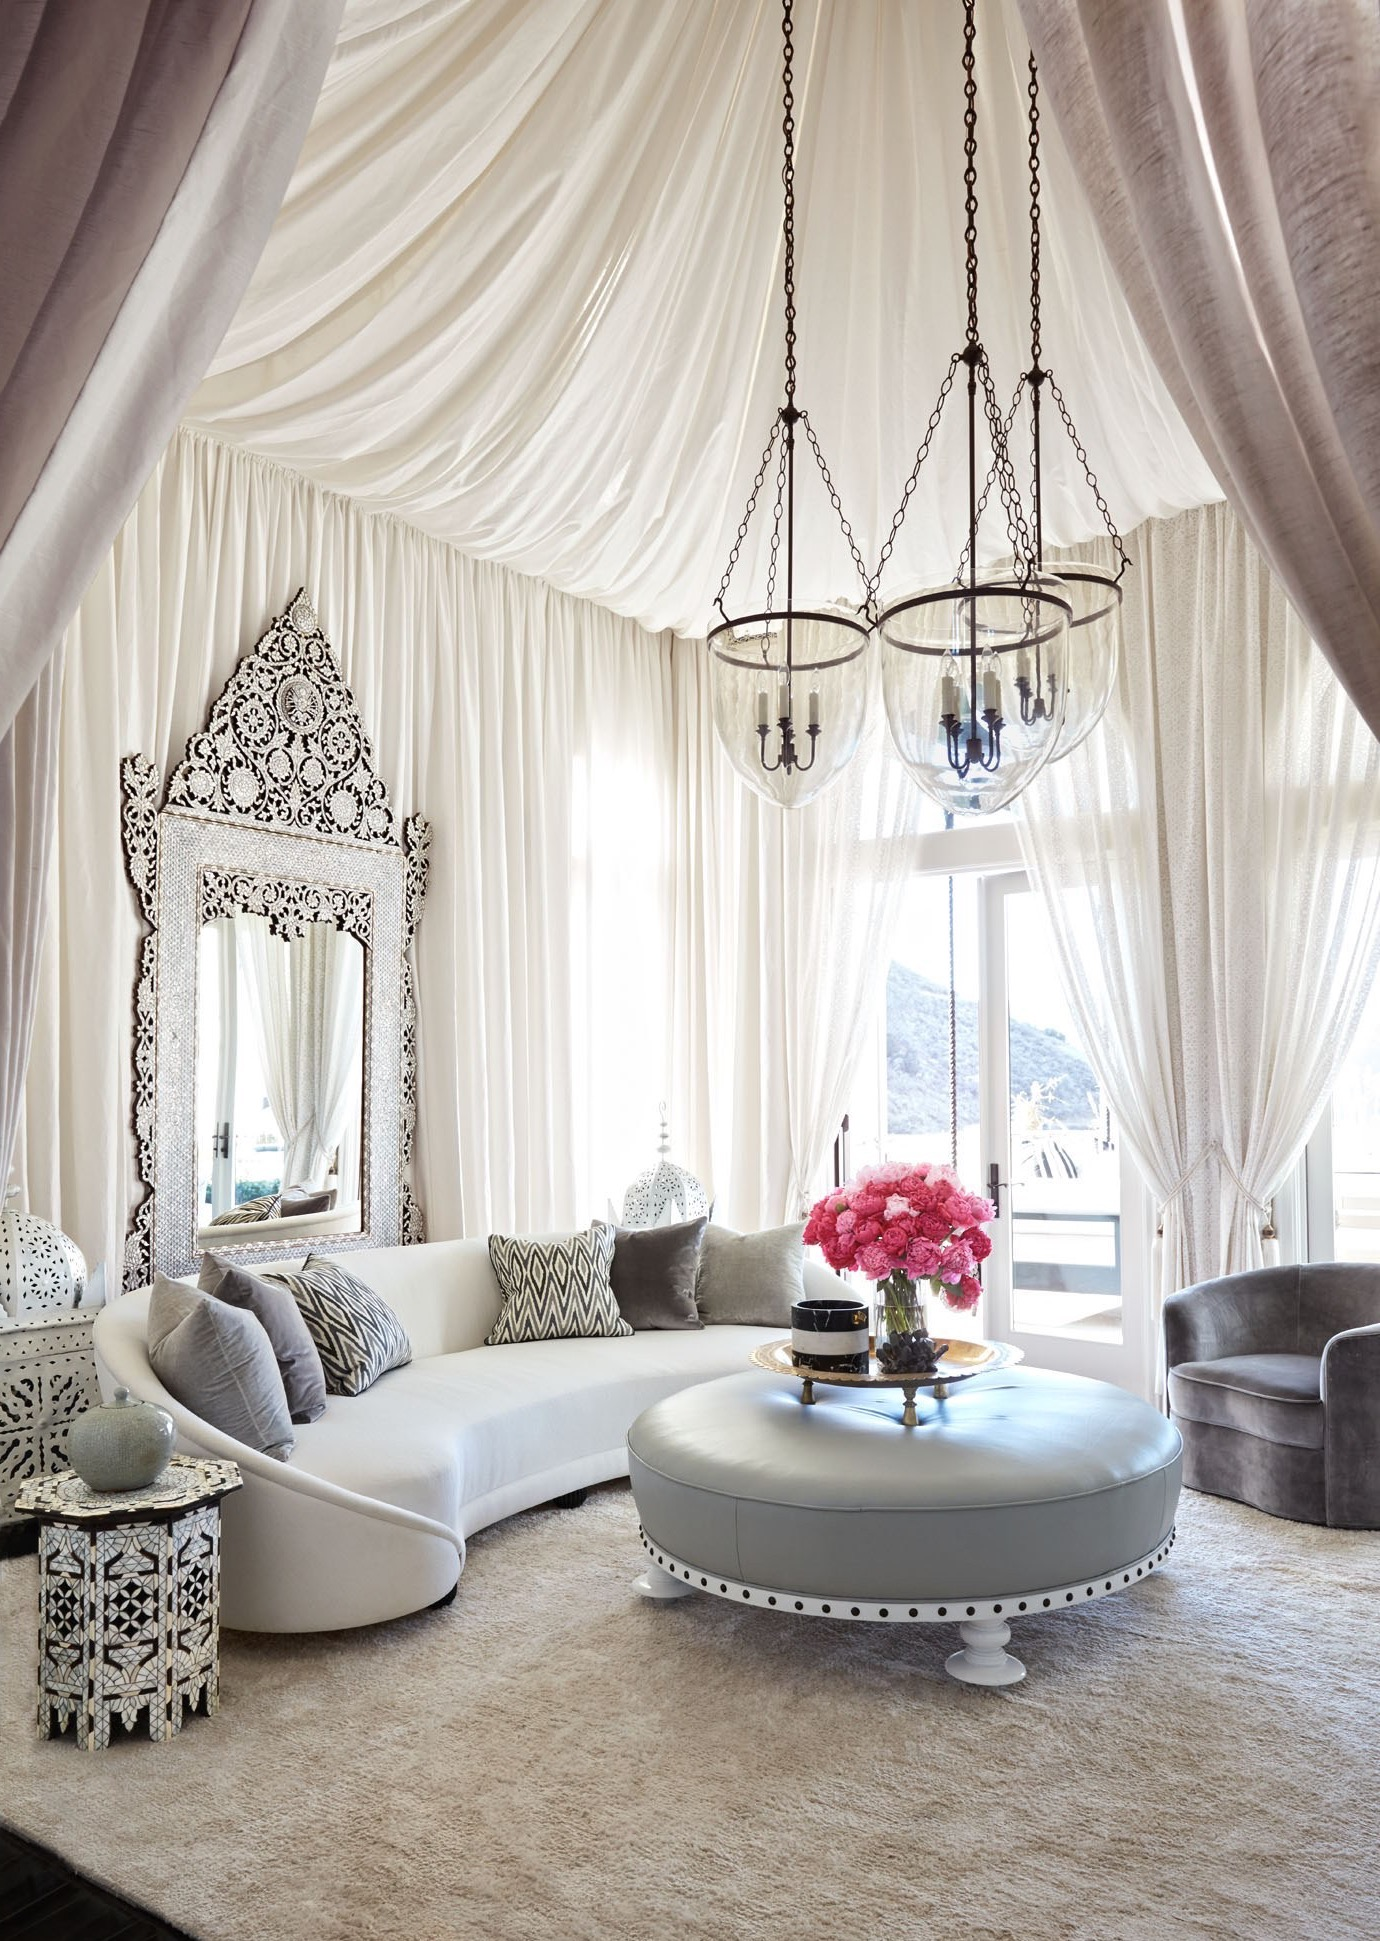 Moroccan Living Room moroccan living room for an exotic interior style | custom home design